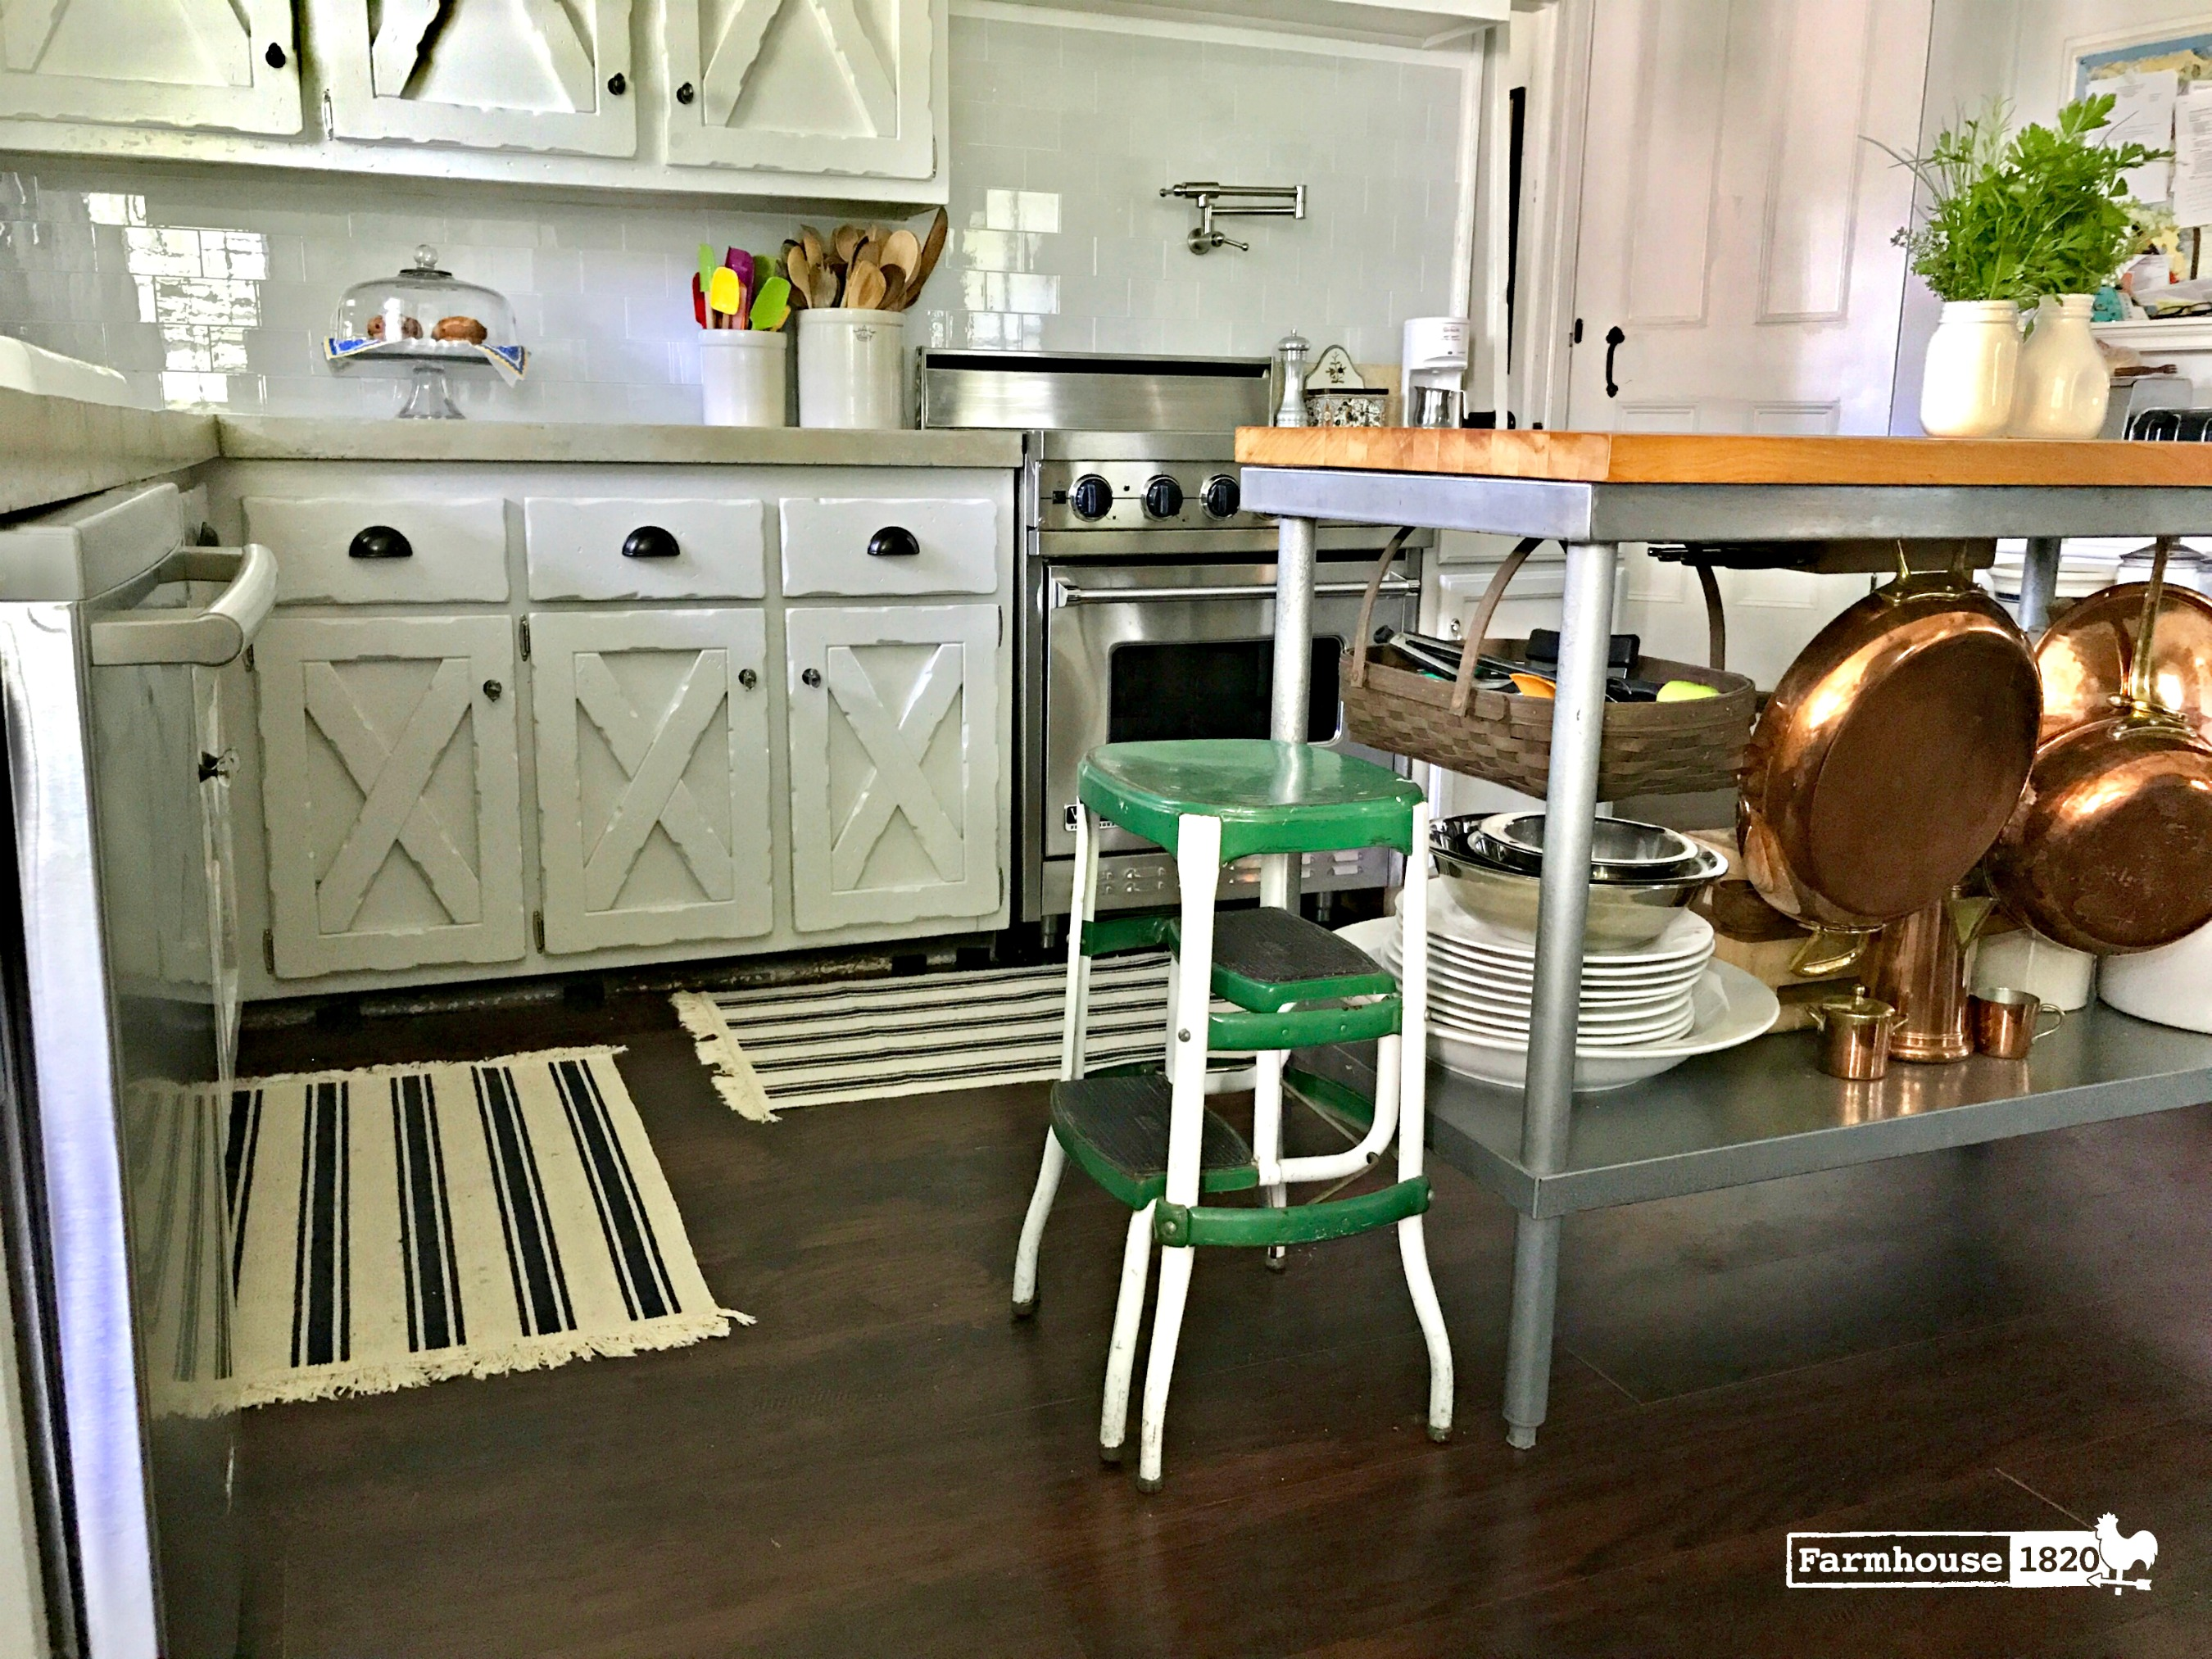 The Kitchen at Farmhouse 1820 - the updated floors and rugs